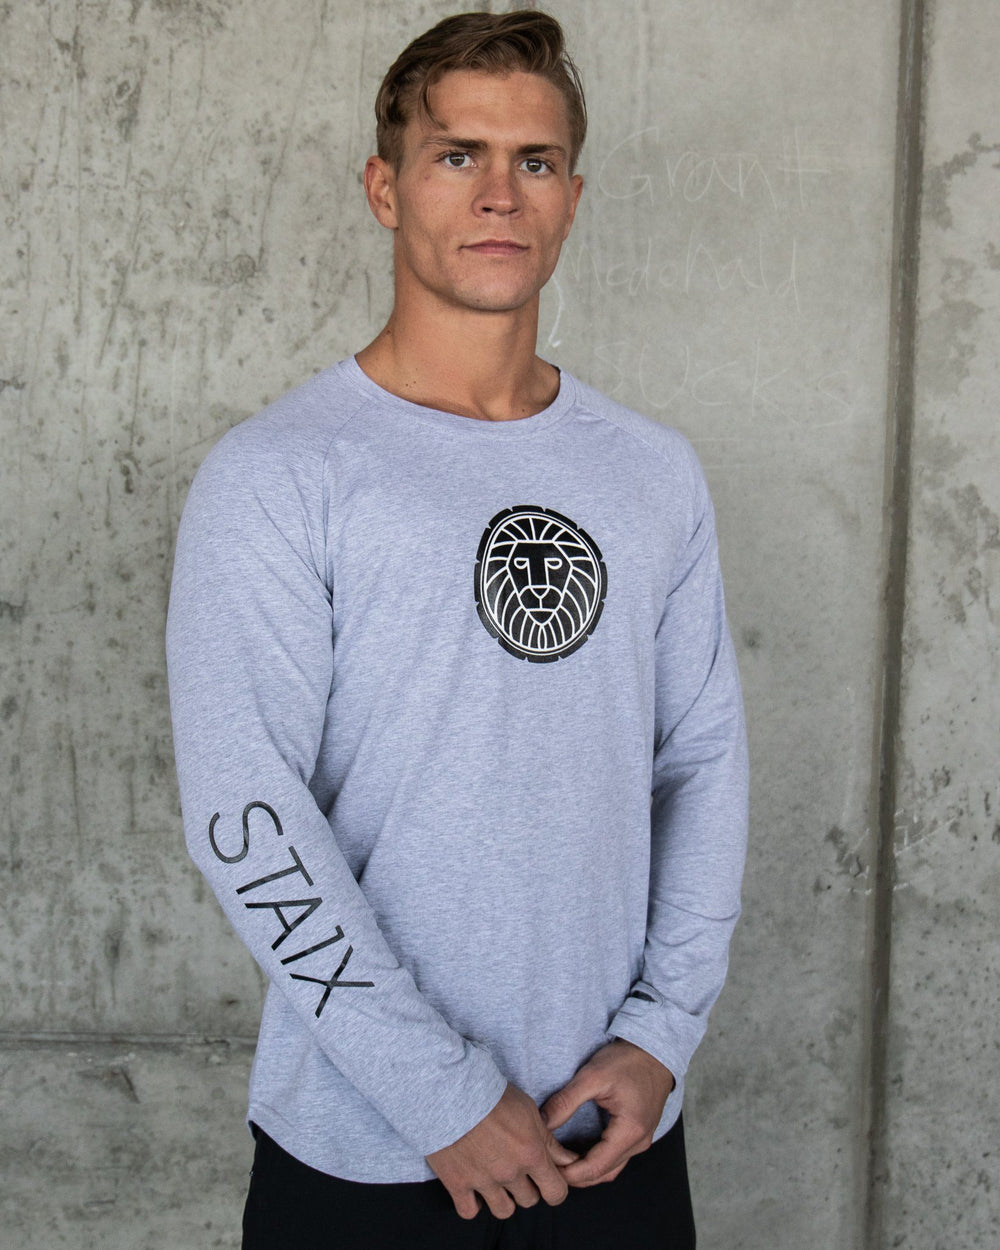 HyperLite Long Sleeve - Gray STAIX